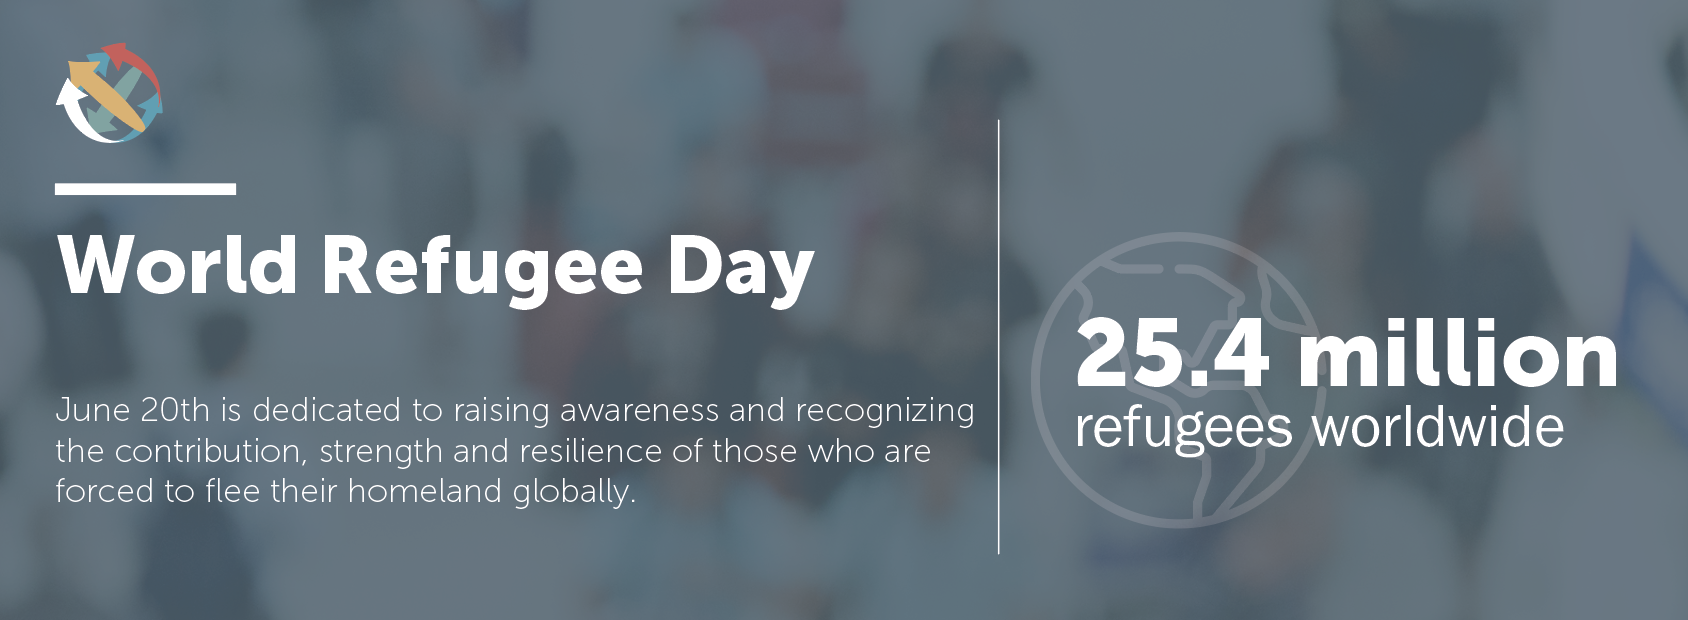 World refugee day infographic